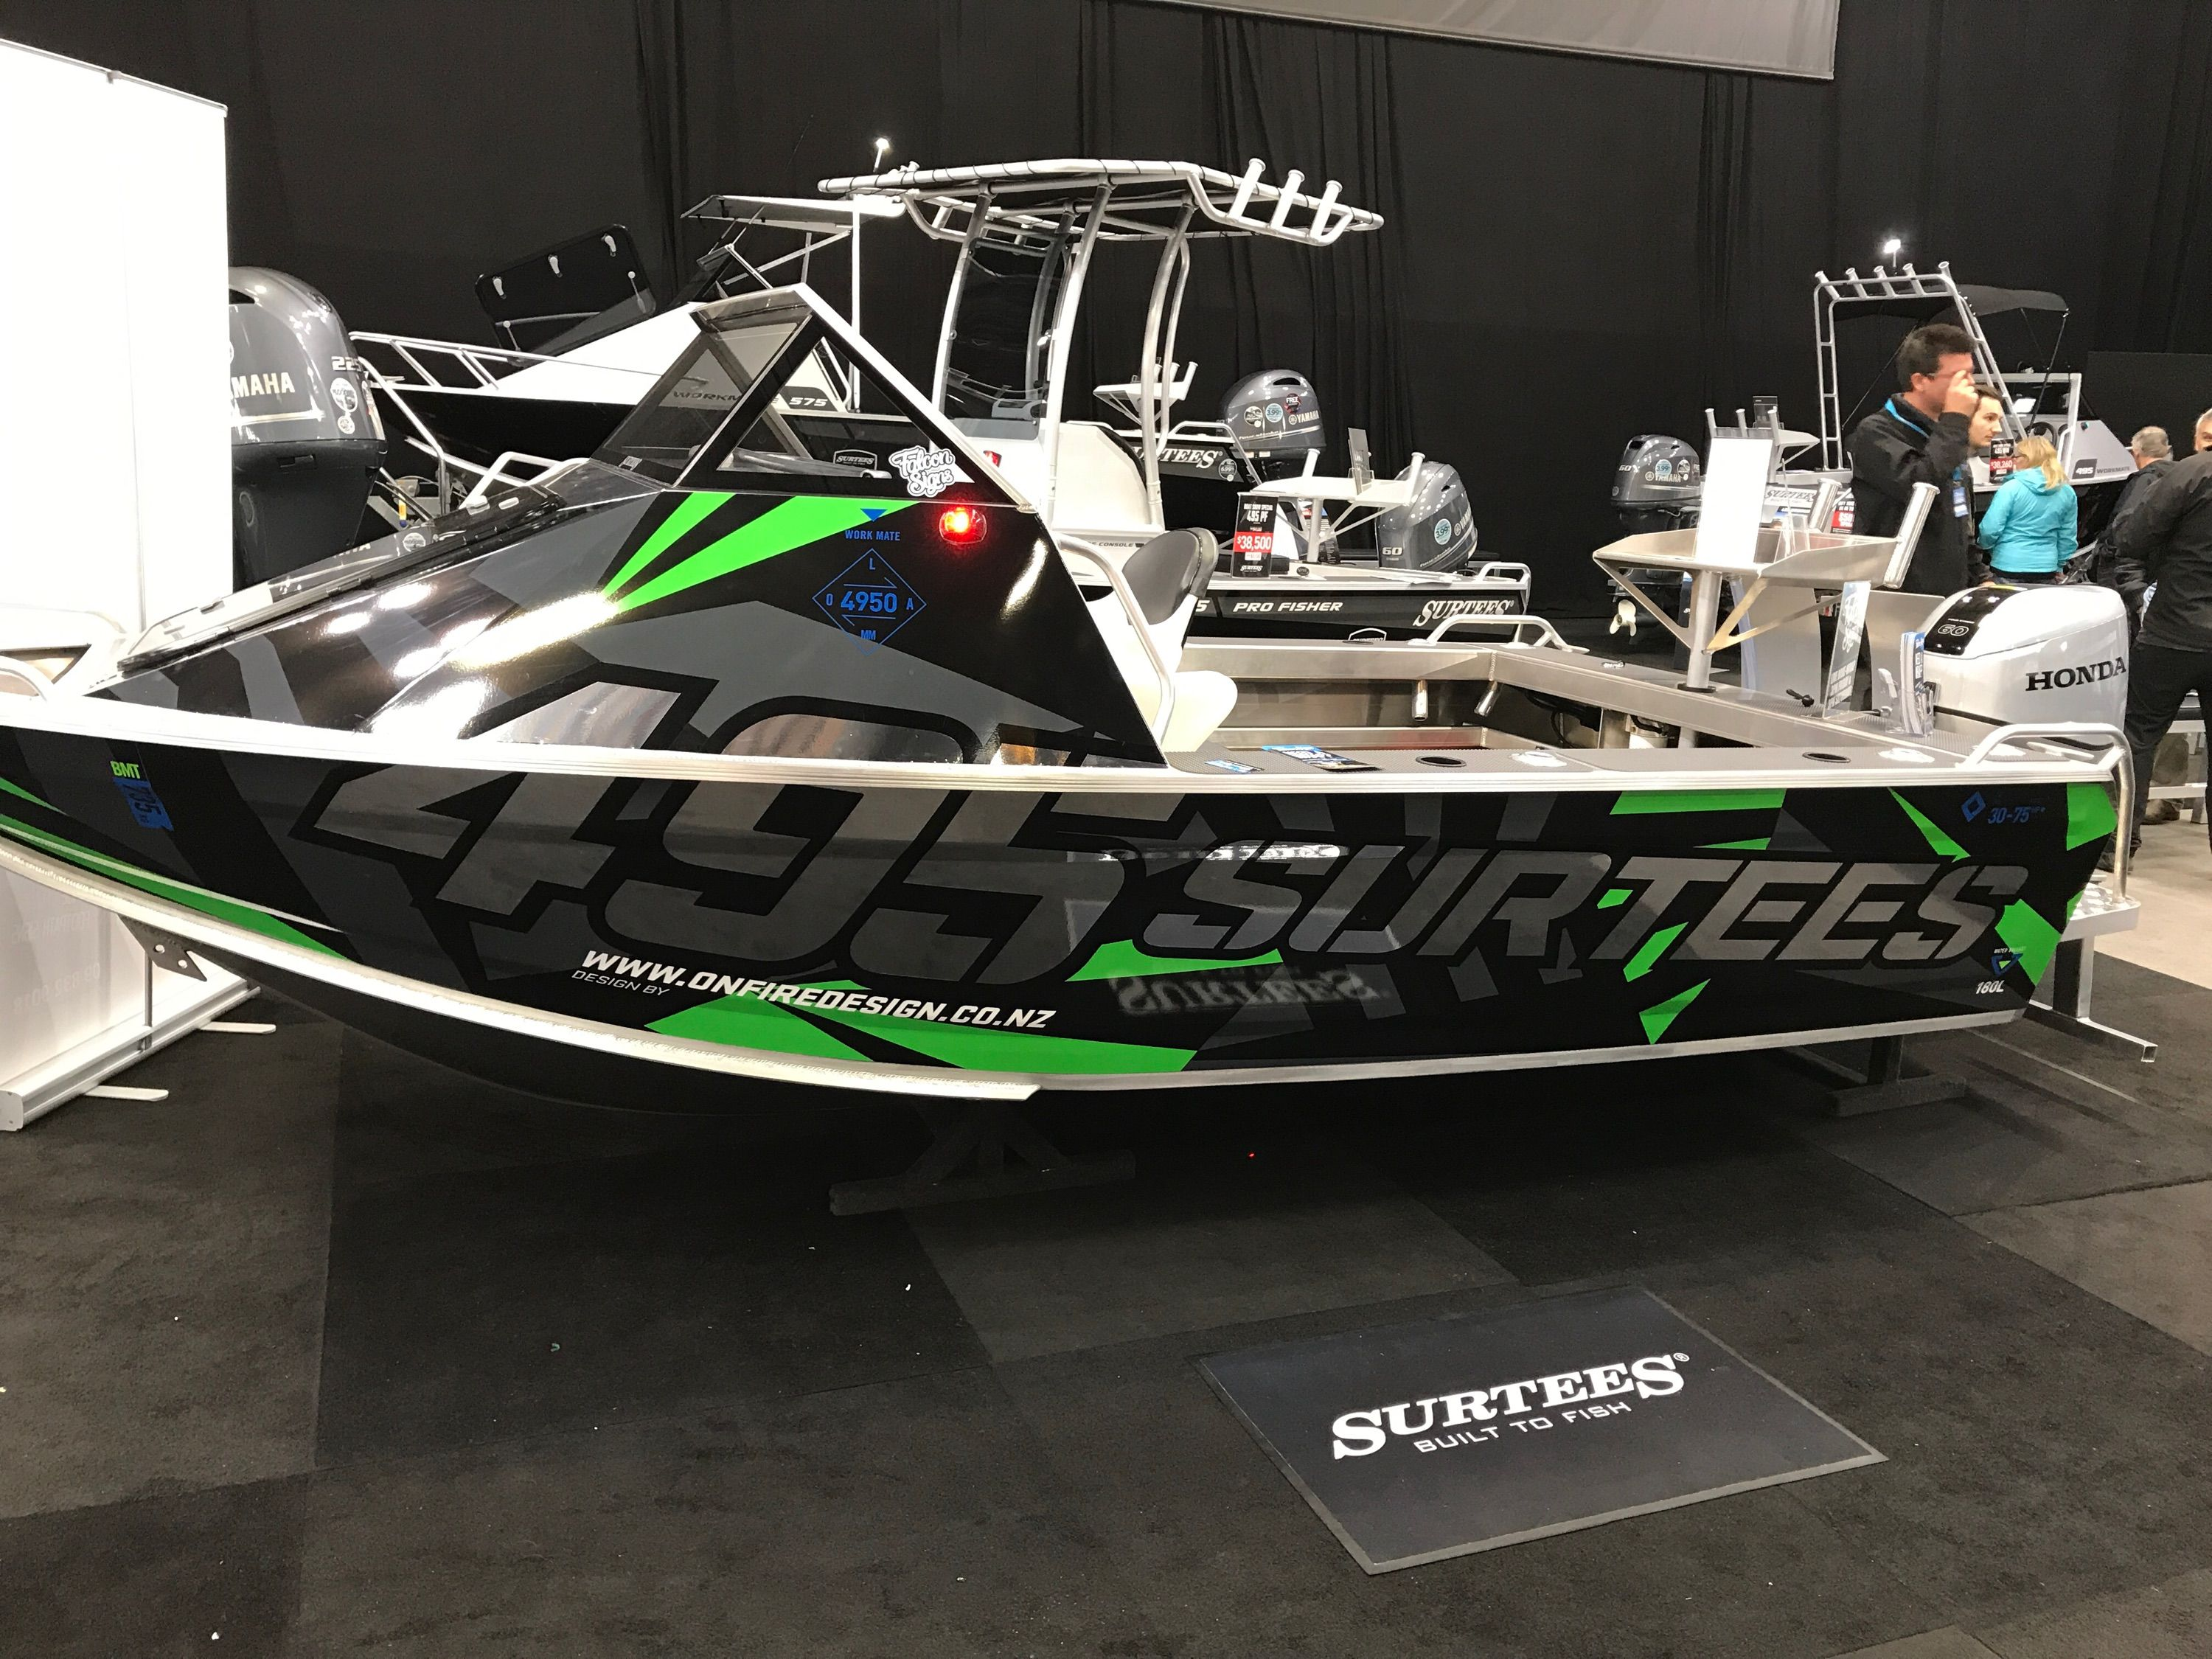 Boat Wrap Design Onfire Design Did For Surtees Boats Visit Www Weareonfire Co Nz Boat Wraps Vehicle Signage Car Wrap